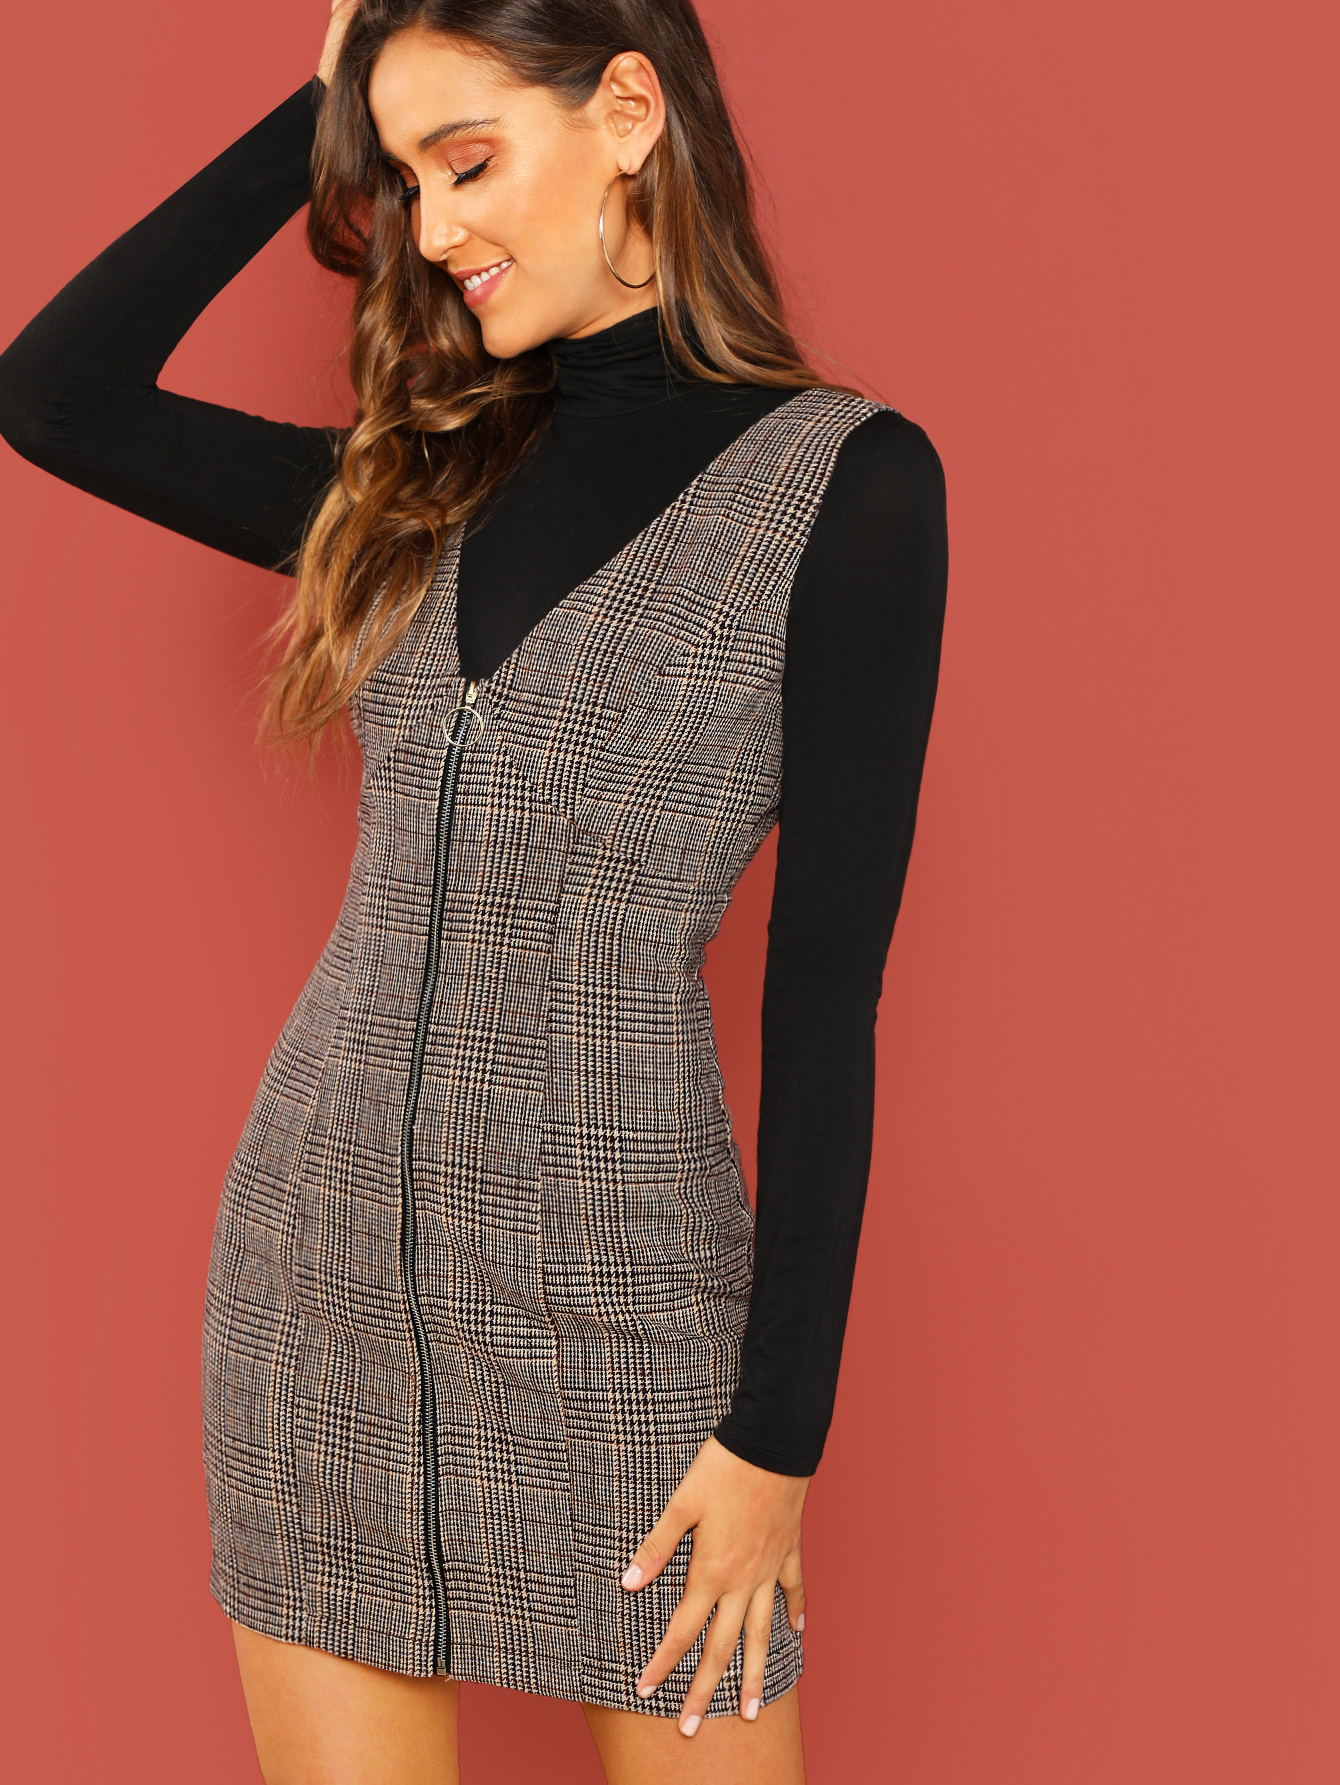 Zipper Up Glen Plaid Pinafore Dress by Romwe